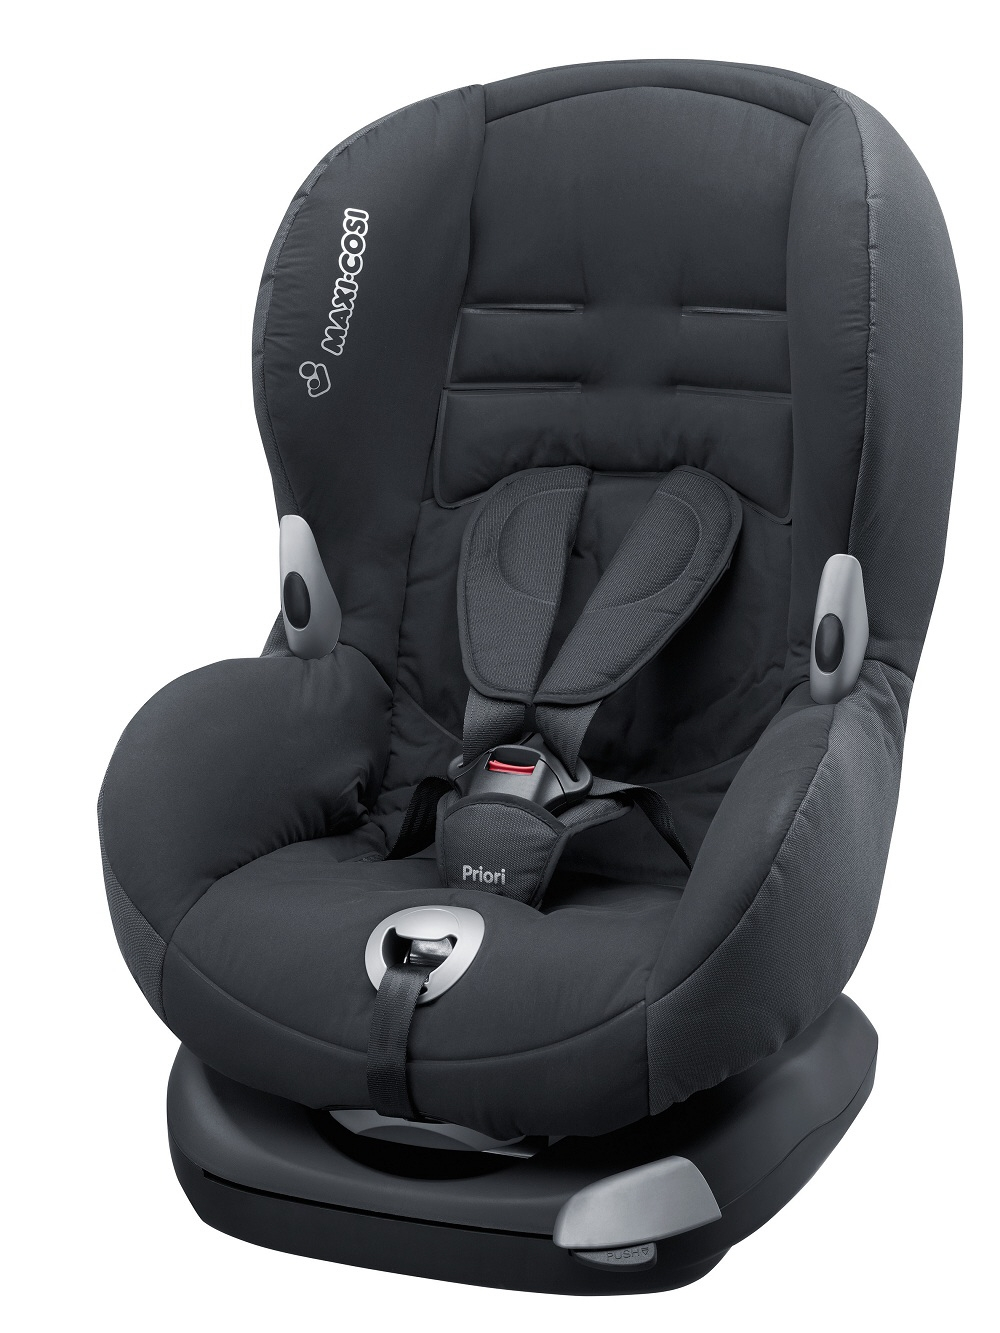 maxi cosi child car seat priori xp 2015 phantom buy at kidsroom car seats. Black Bedroom Furniture Sets. Home Design Ideas